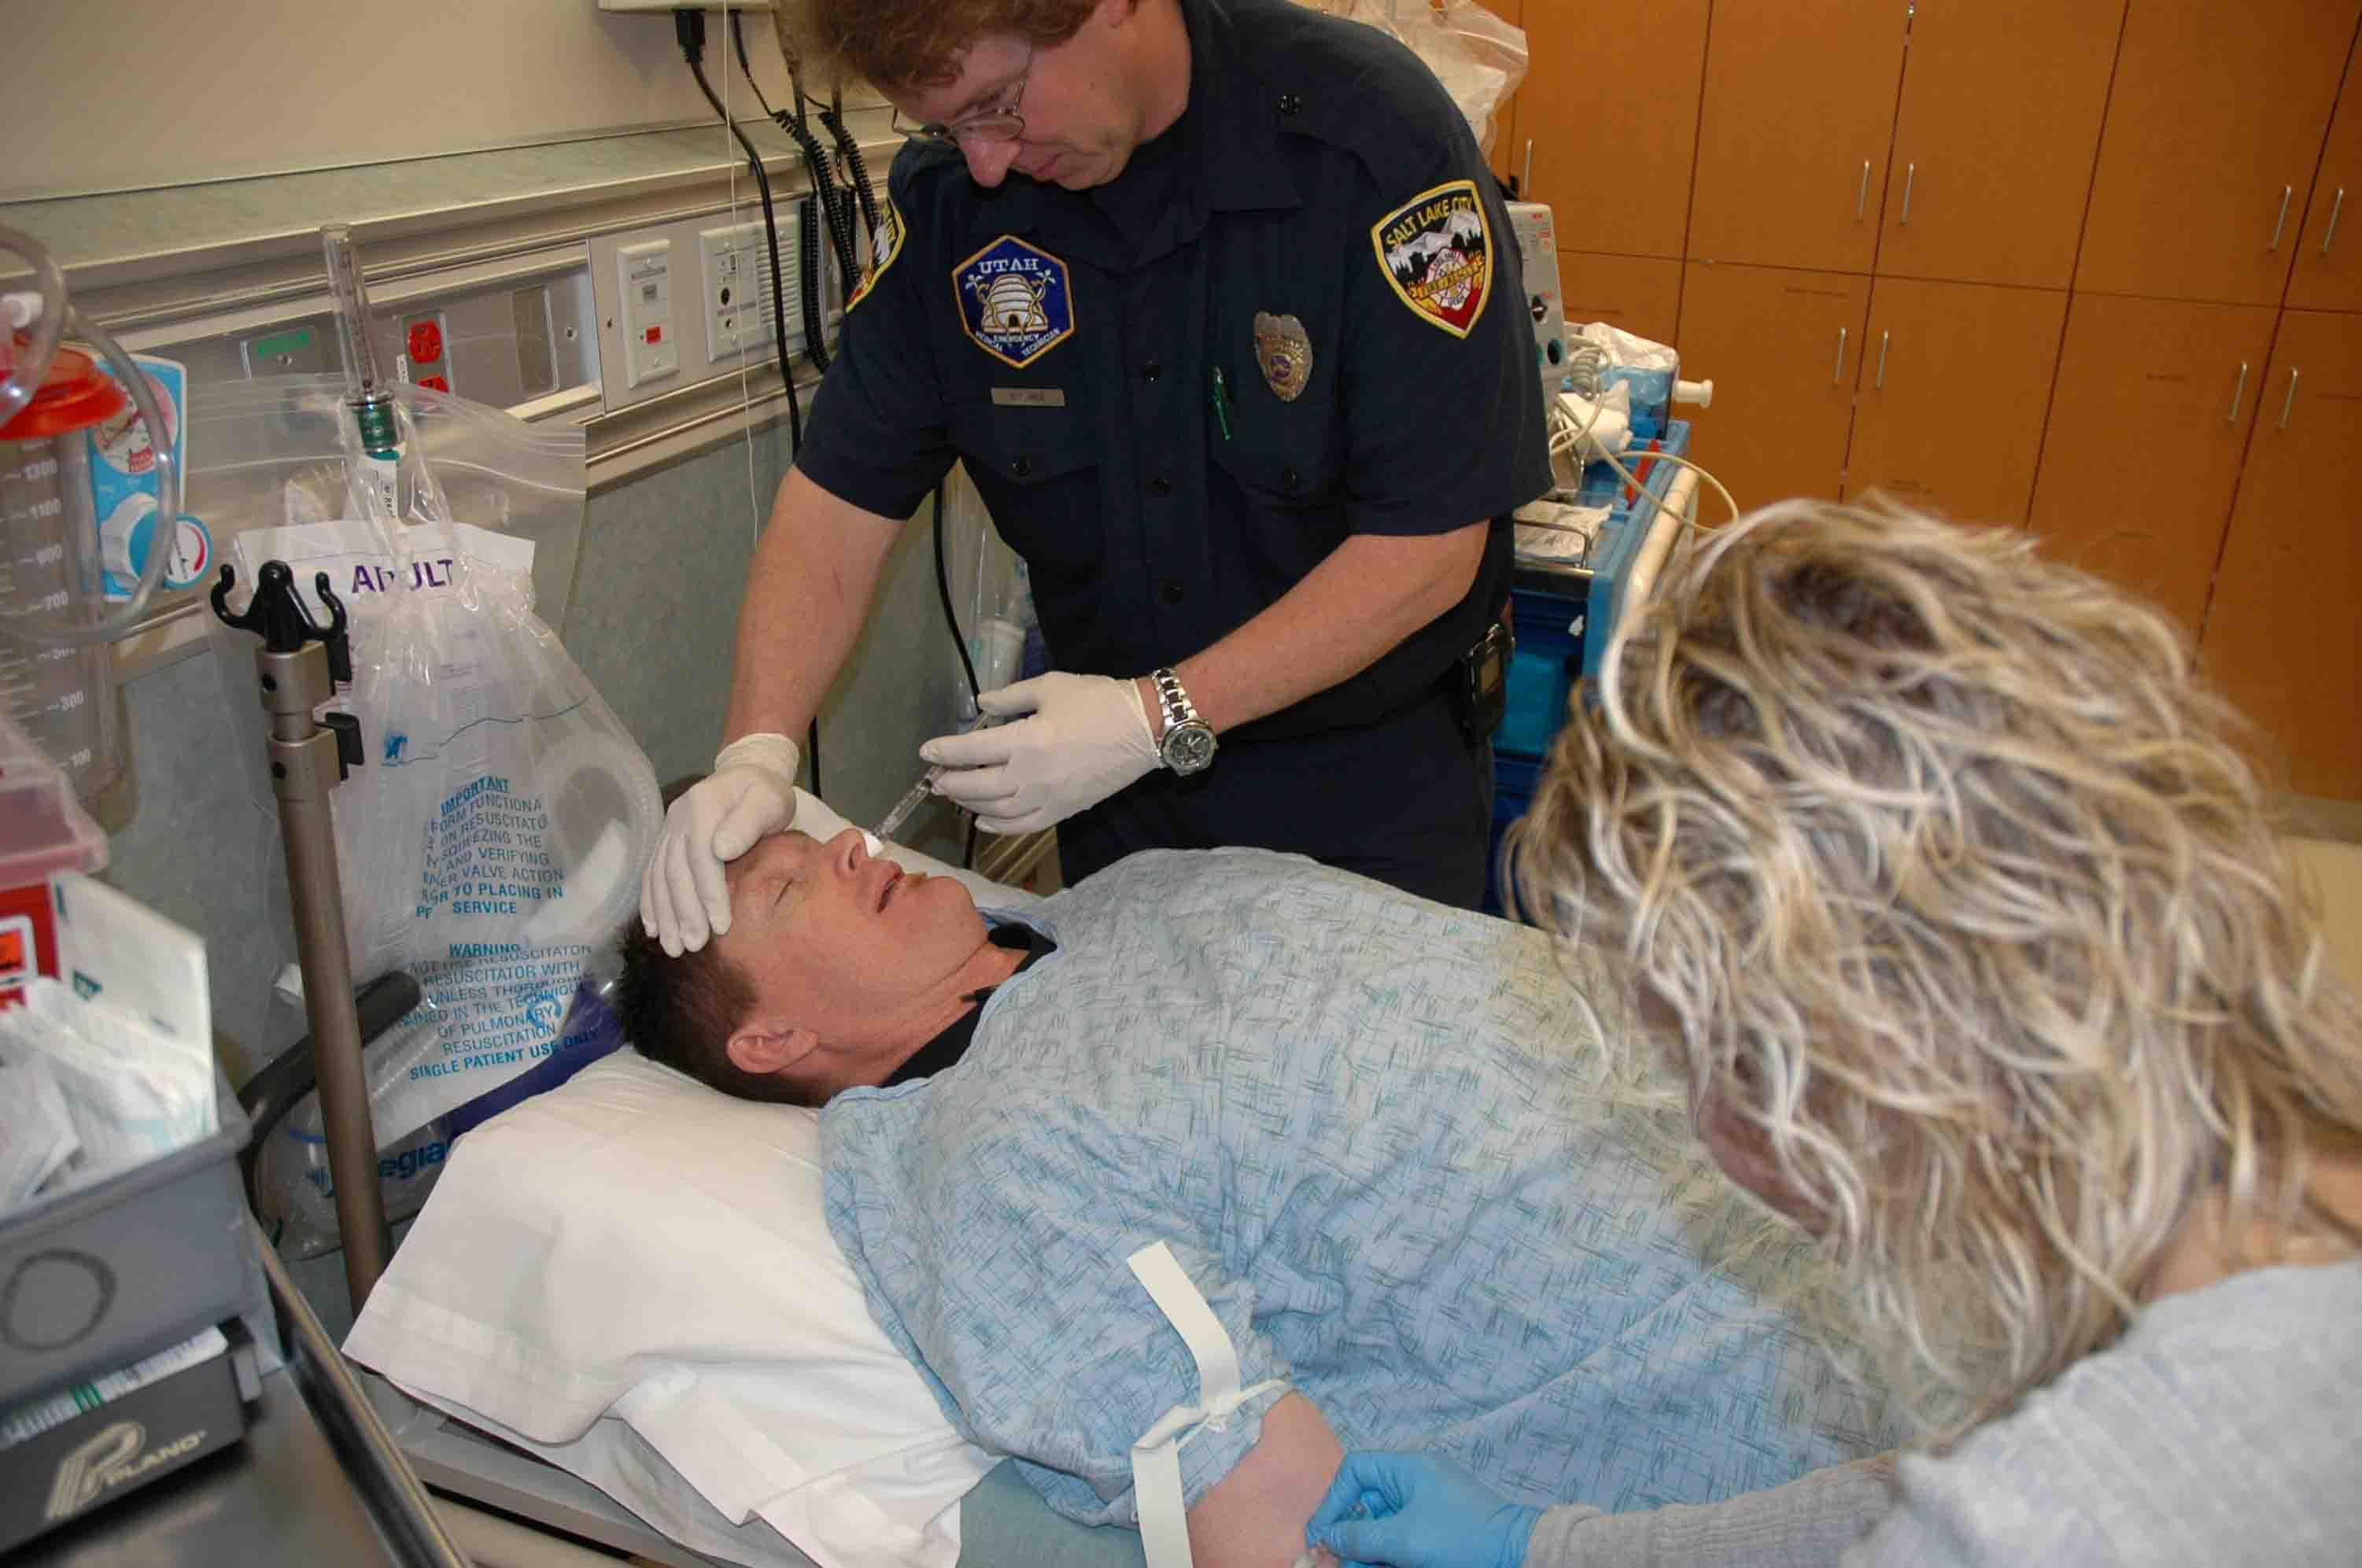 Delivering intranasal naloxone to a heroin overdose in an emergency situation